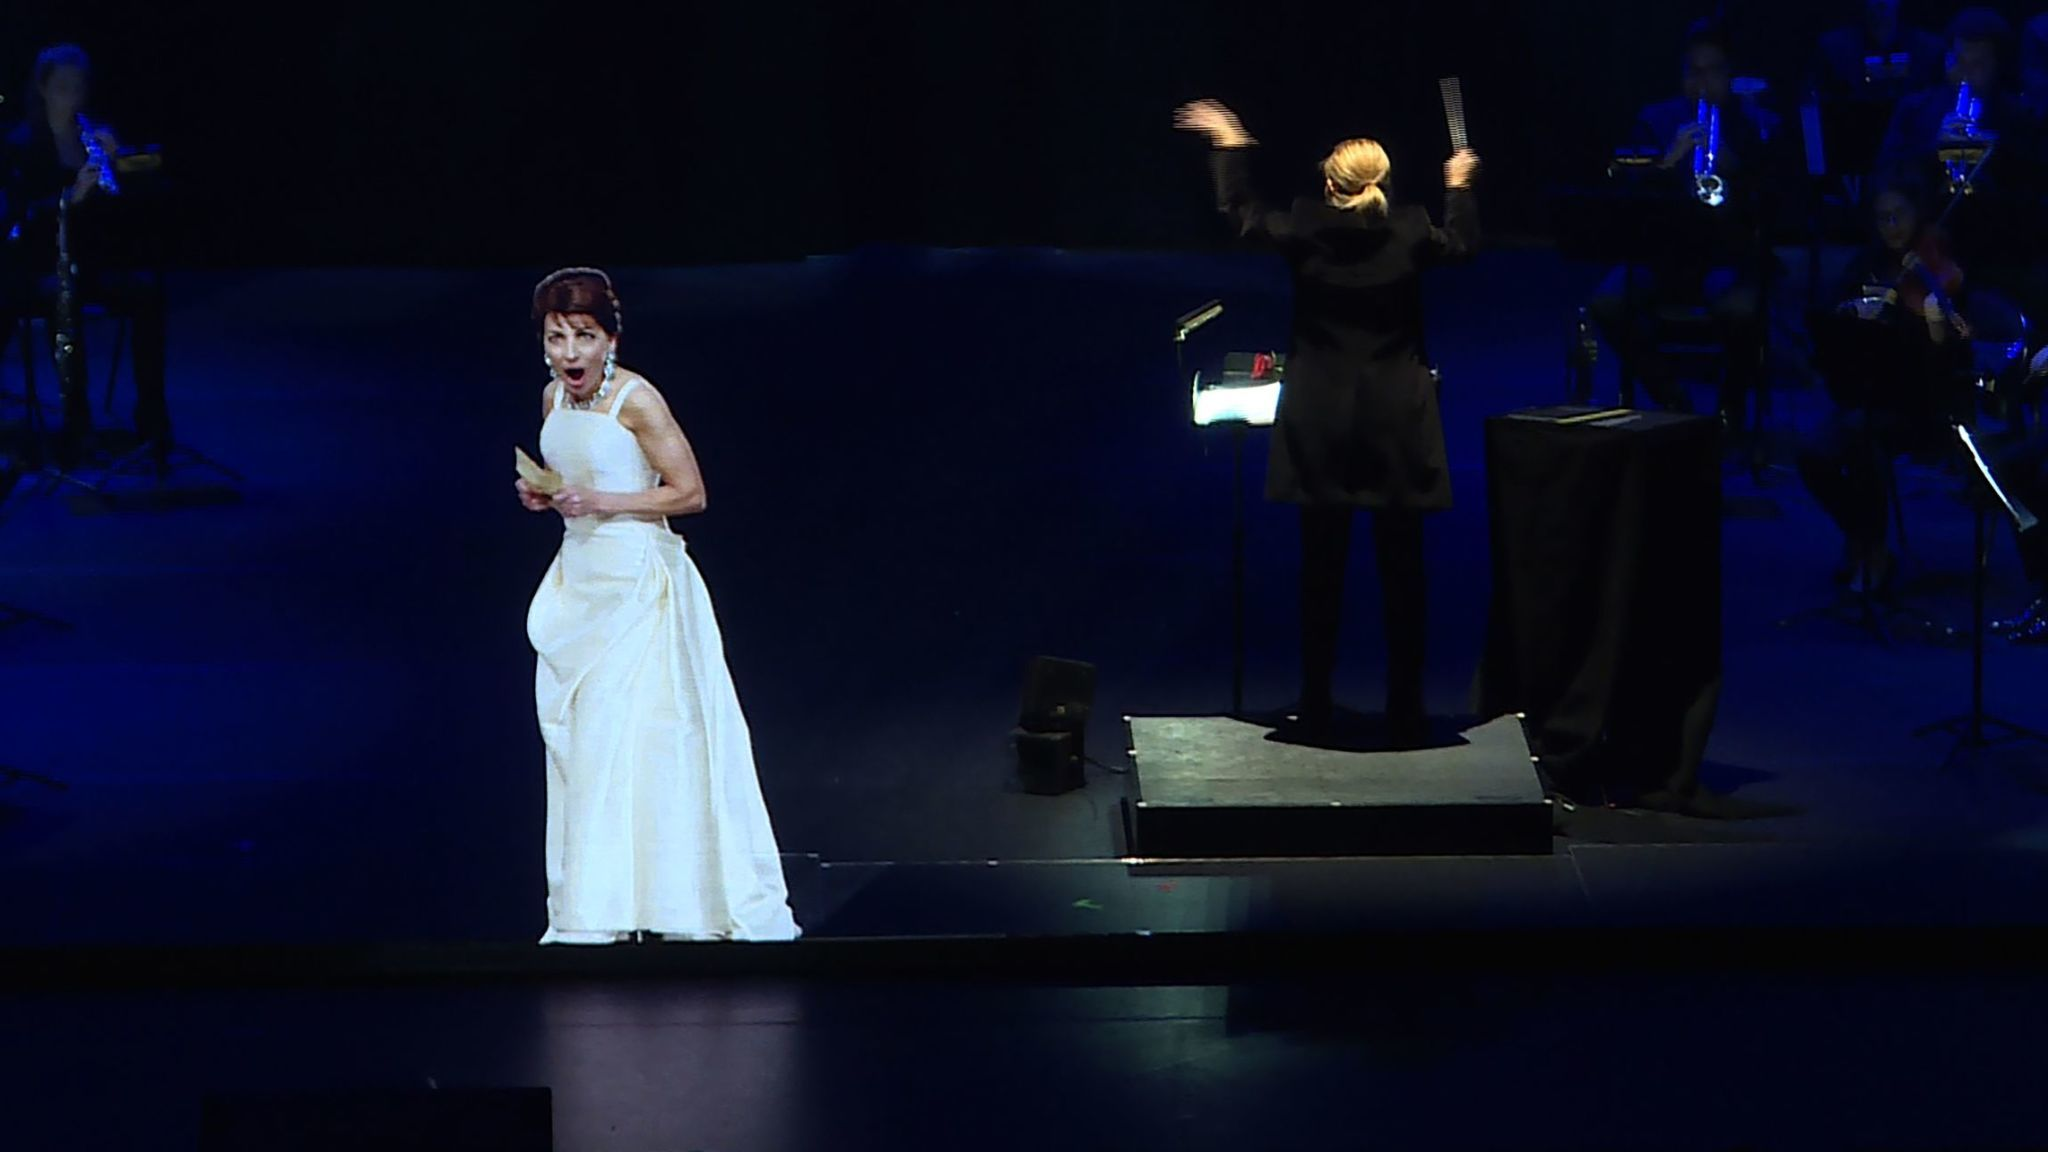 Opera singer Maria Callas went on tour in 2018, 41 years after her death